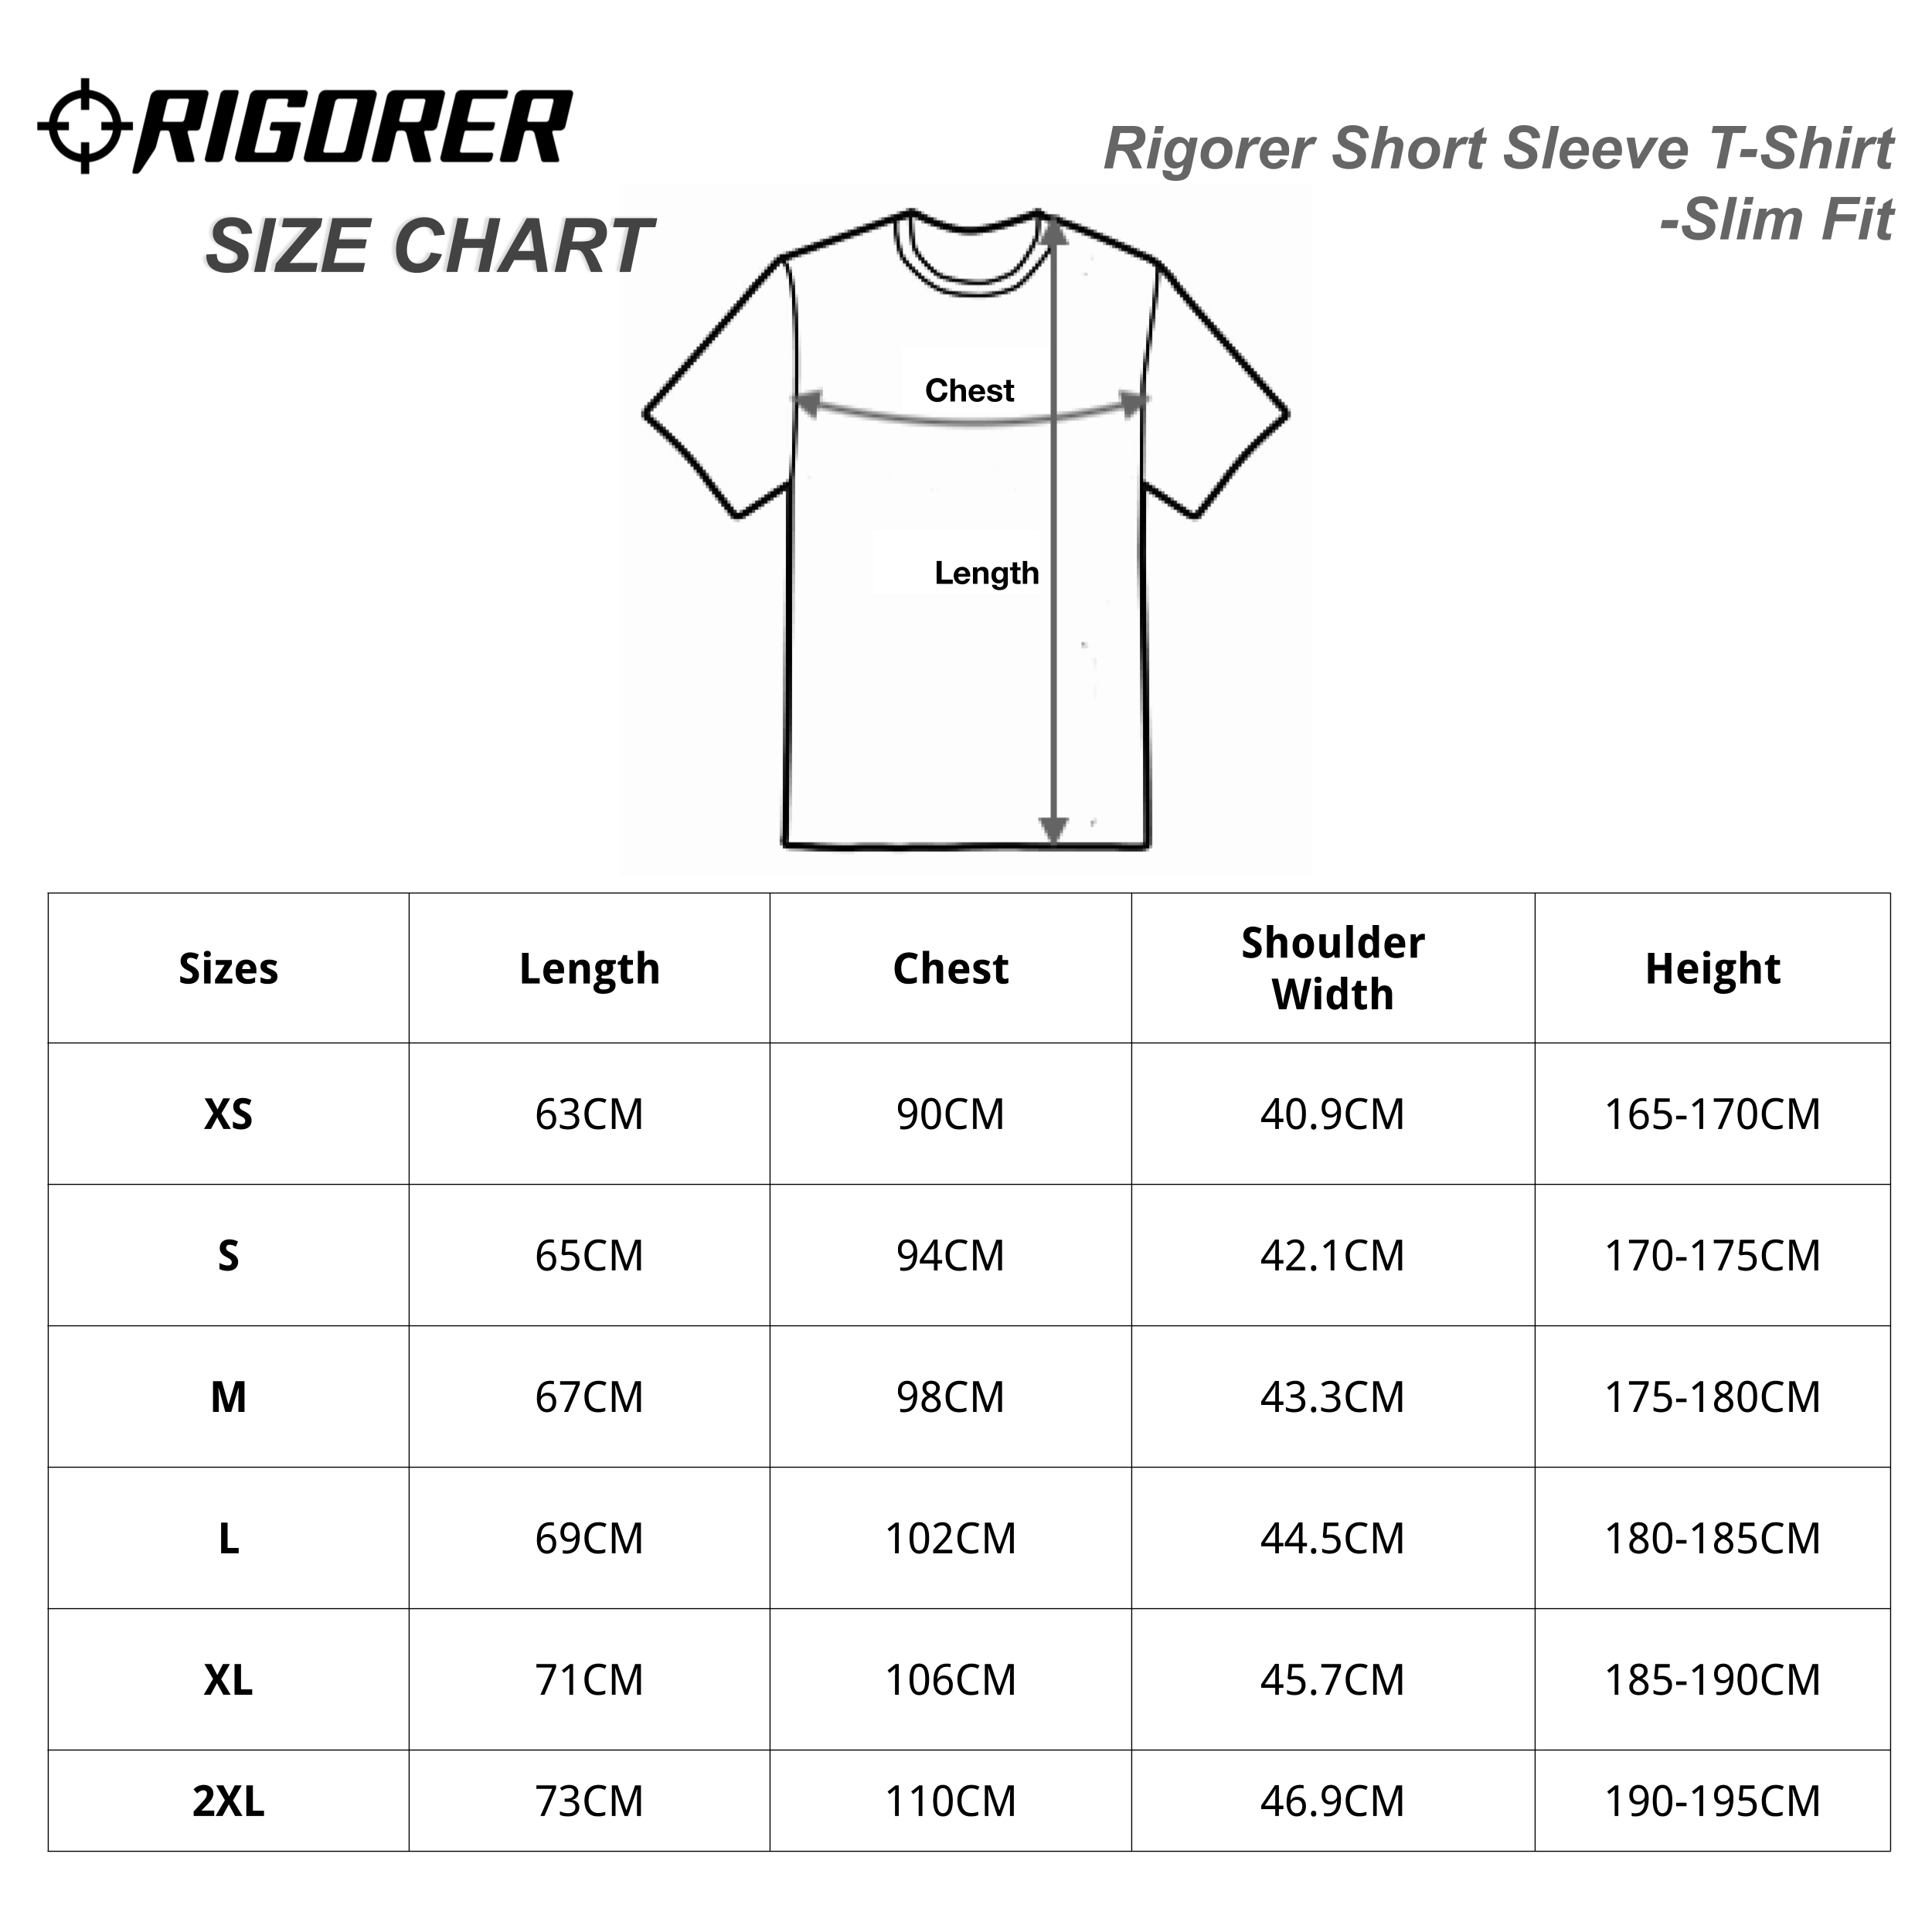 Rigorer Short Sleeve T-Shirt - SLIM FIT